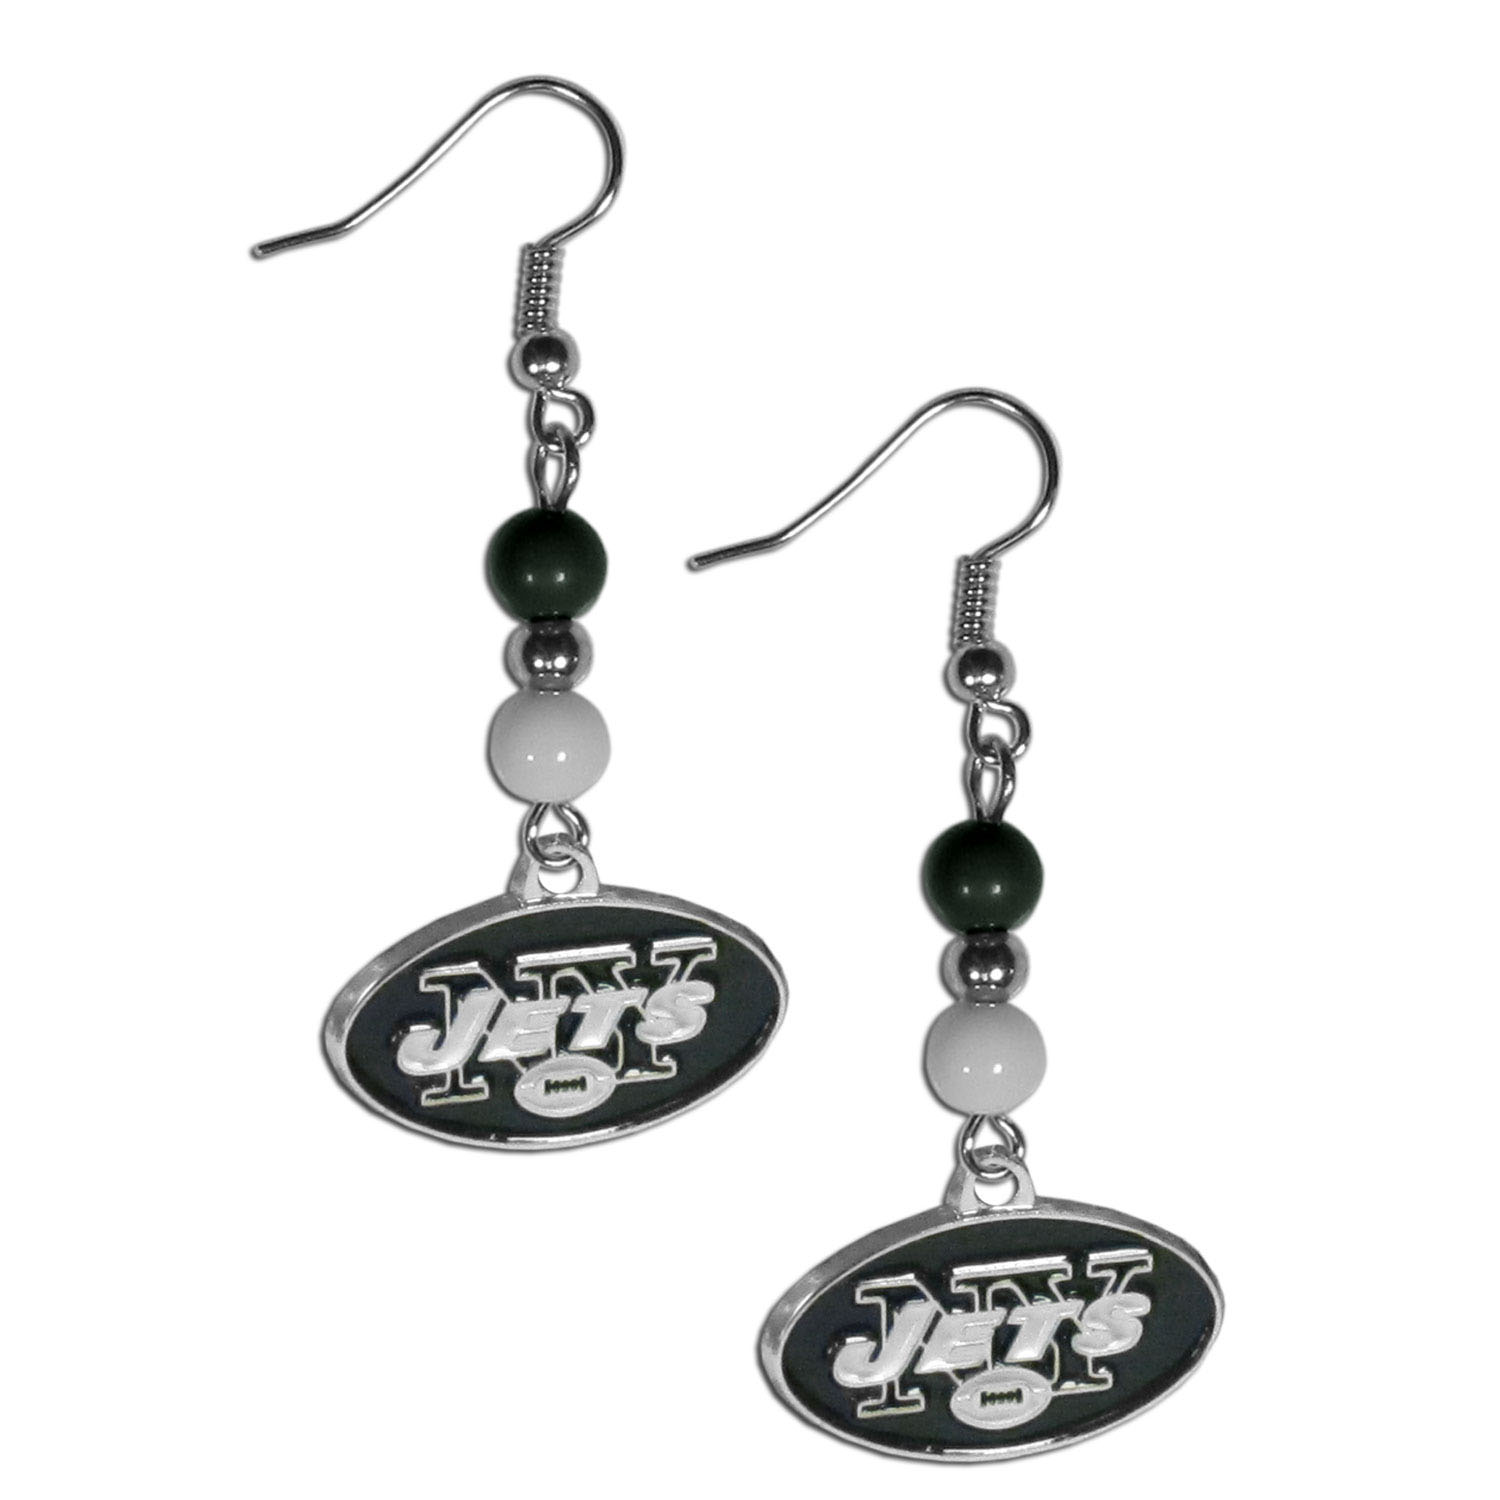 New York Jets Fan Bead Dangle Earrings - Love your team, show it off with our New York Jets bead dangle earrings! These super cute earrings hang approximately 2 inches and features 2 team colored beads and a high polish team charm. A must have for game day!